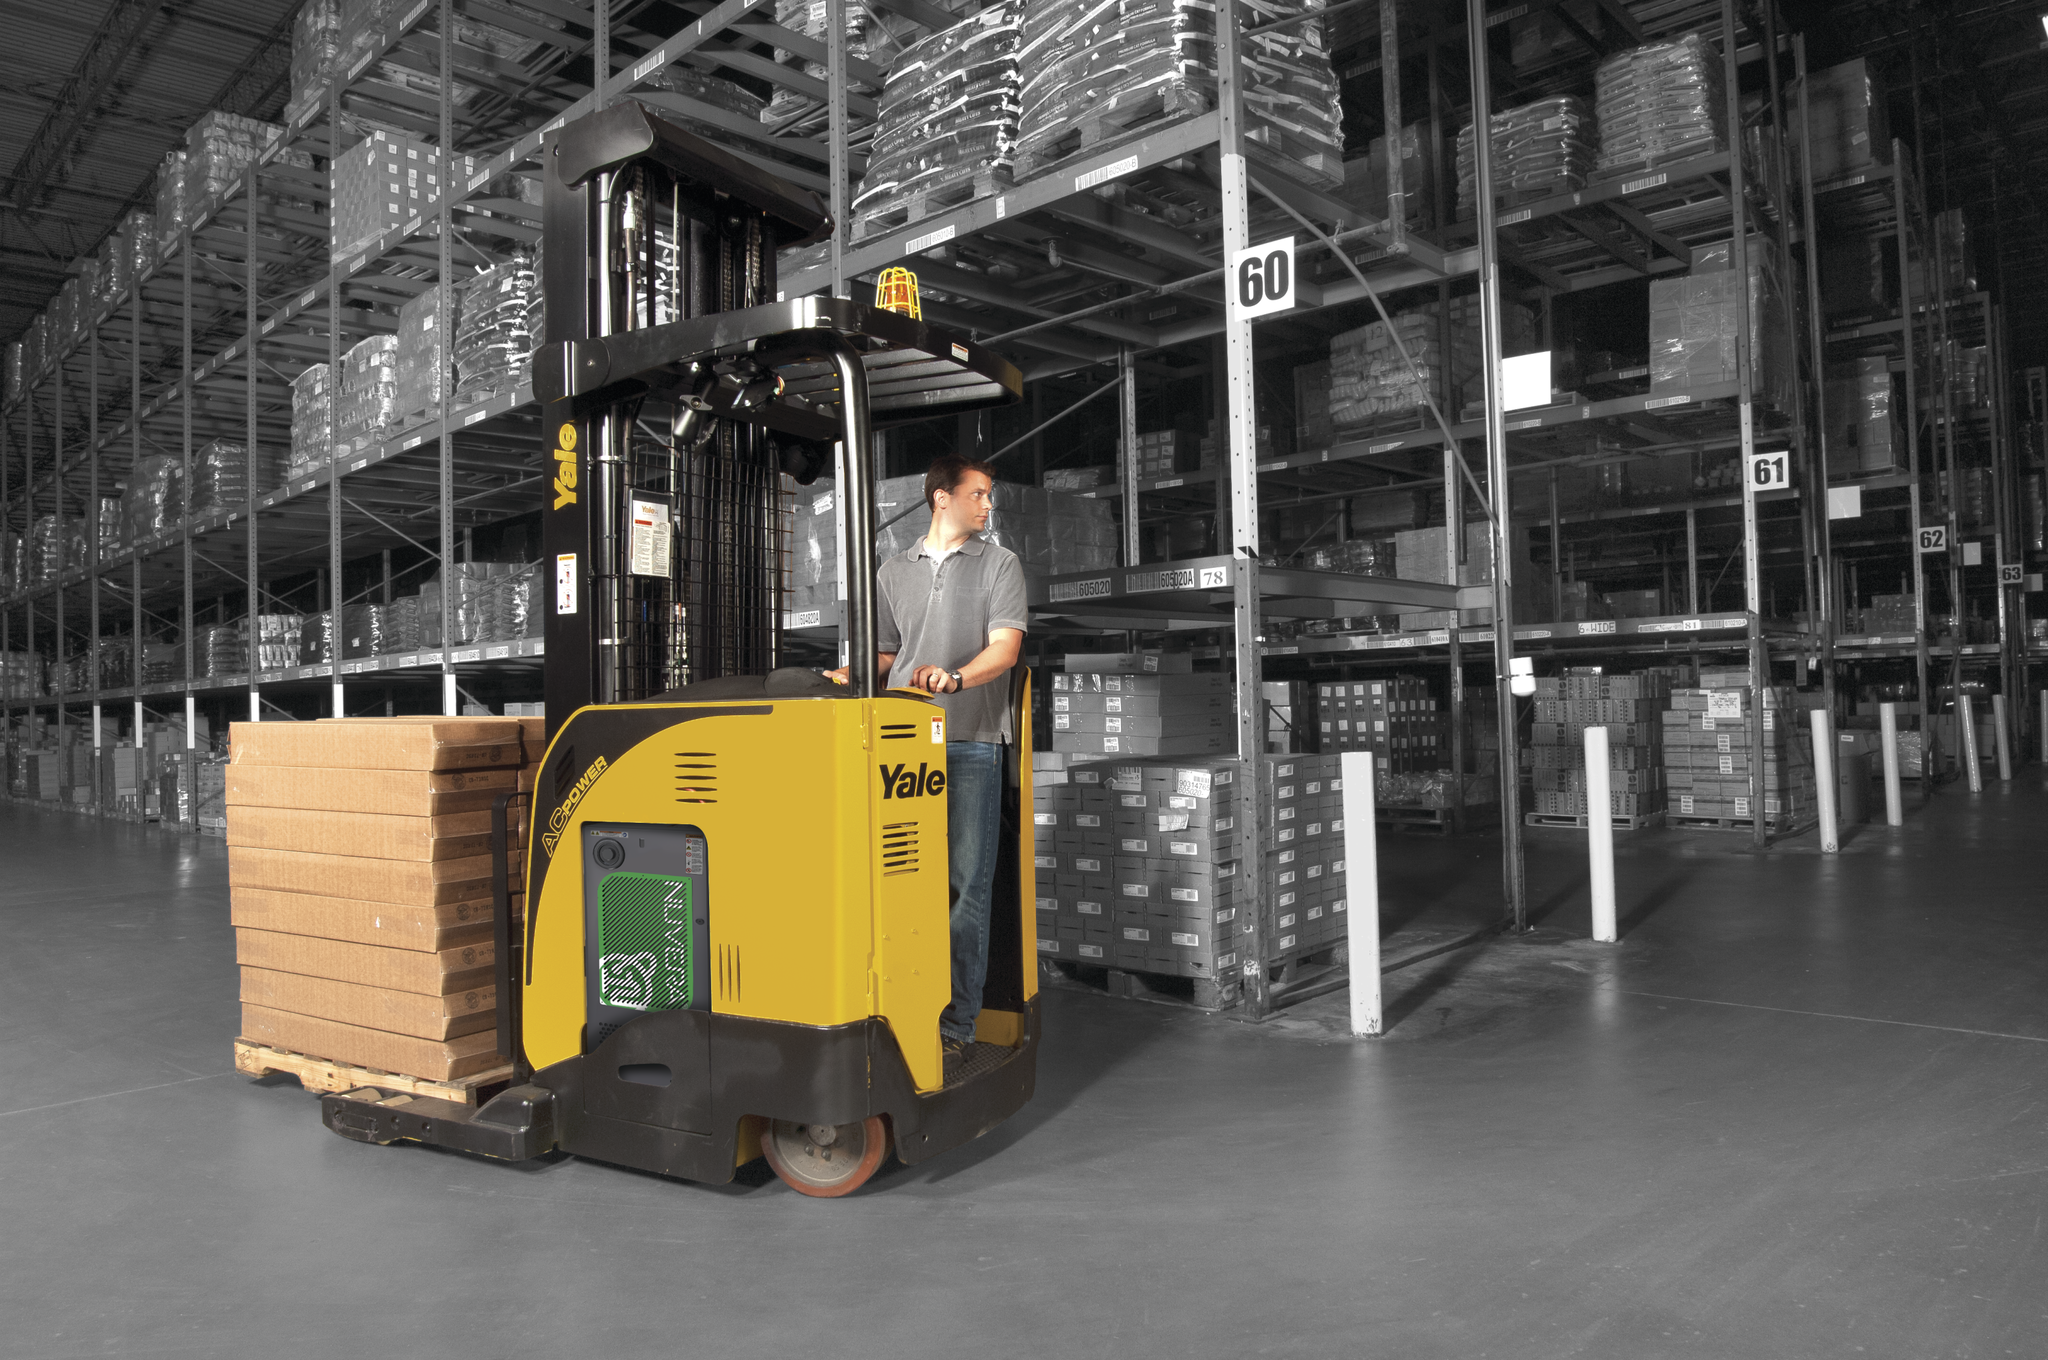 Hydrogen Fuel Cells For Forklifts